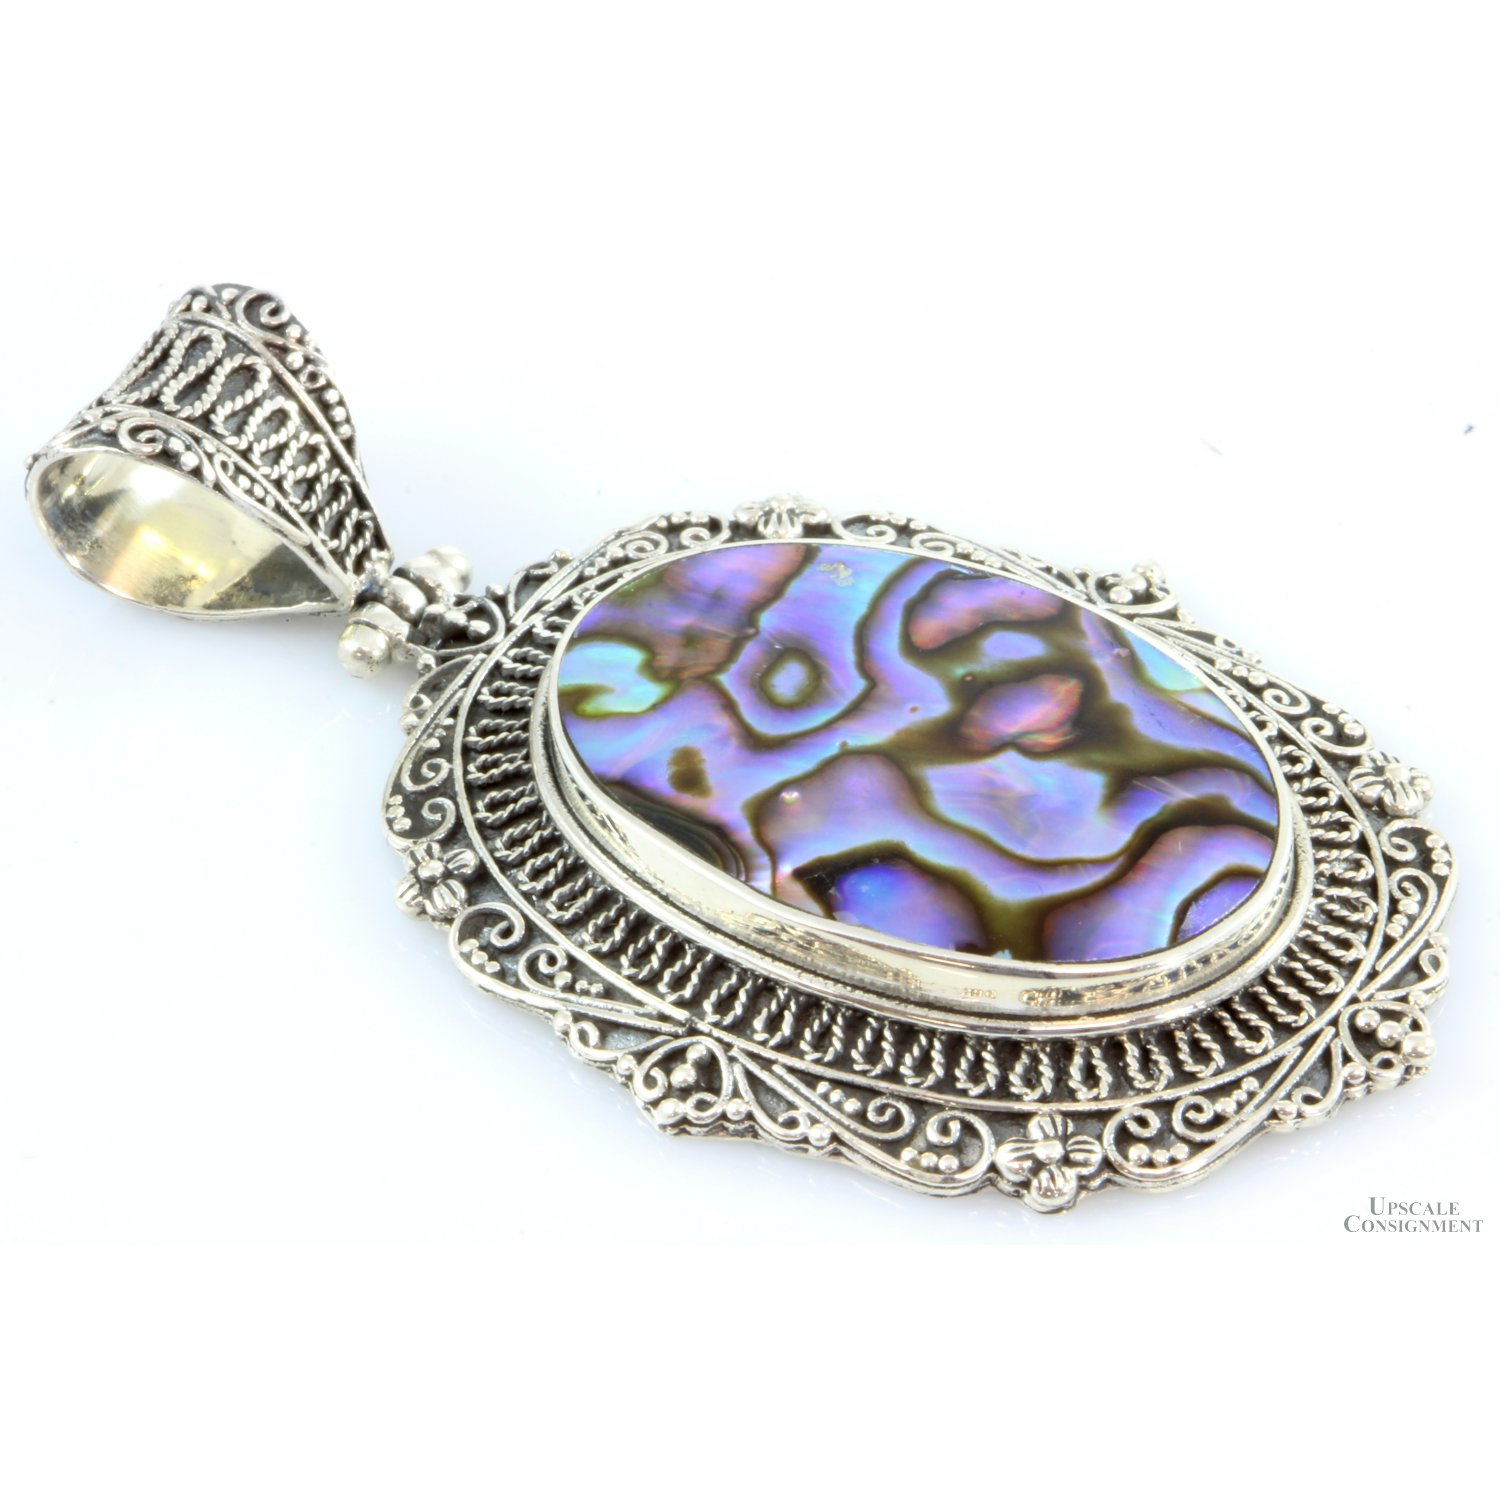 Sterling-Silver-Abalone-Shell-Filigree-Handcrafted-Pendant_92204A.jpg